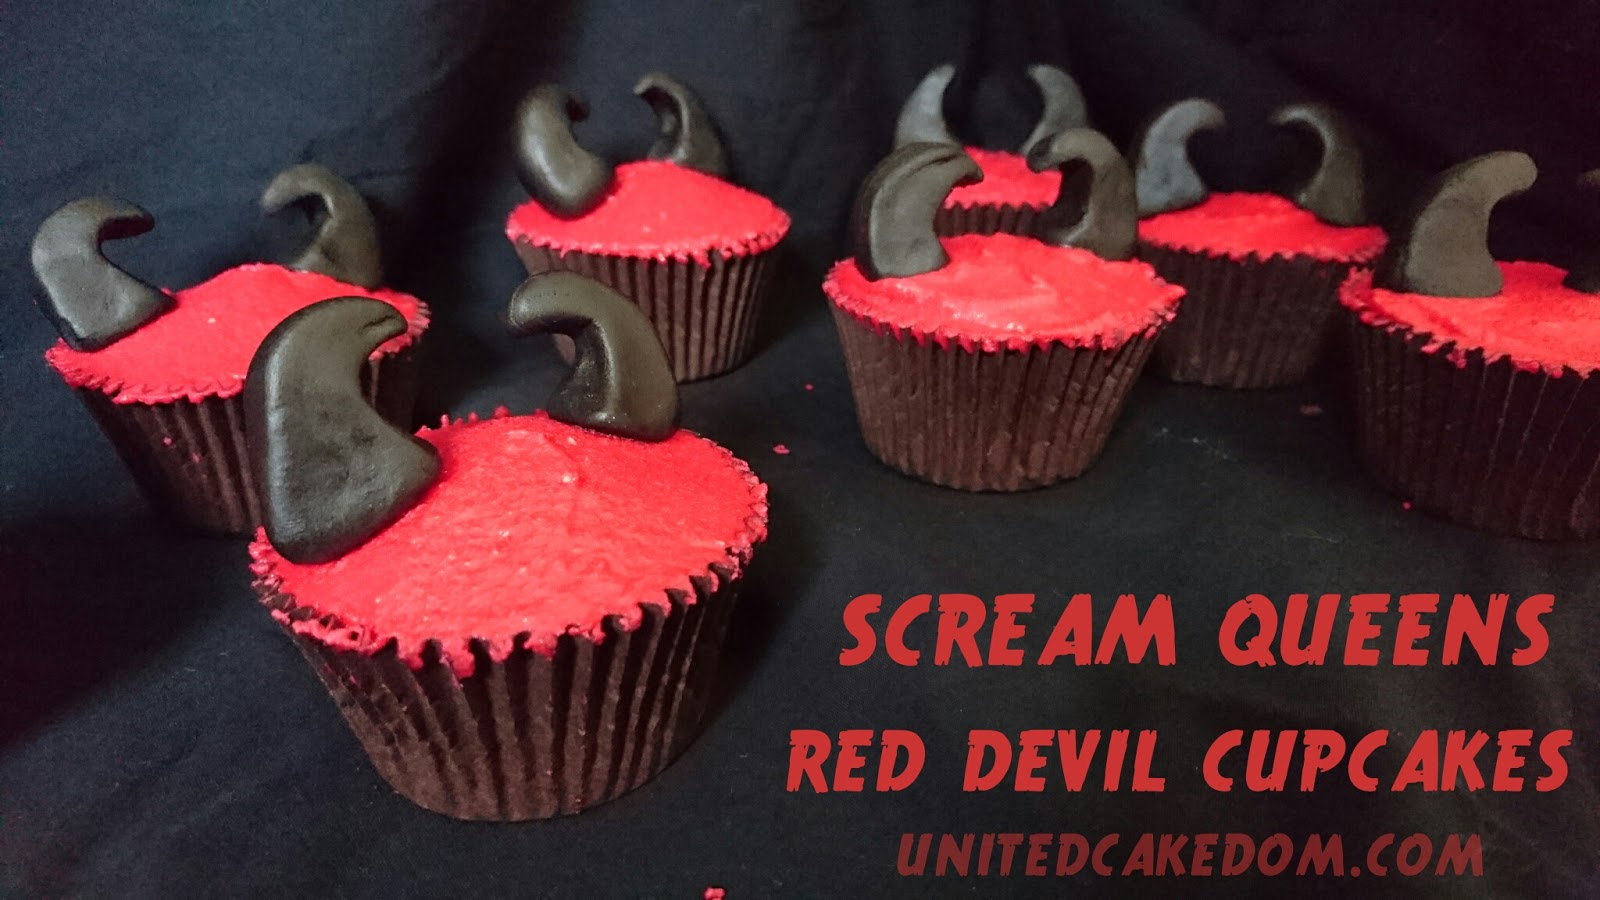 United Cakedom: Red Devil Cupcakes {inspired by Scream Queens}